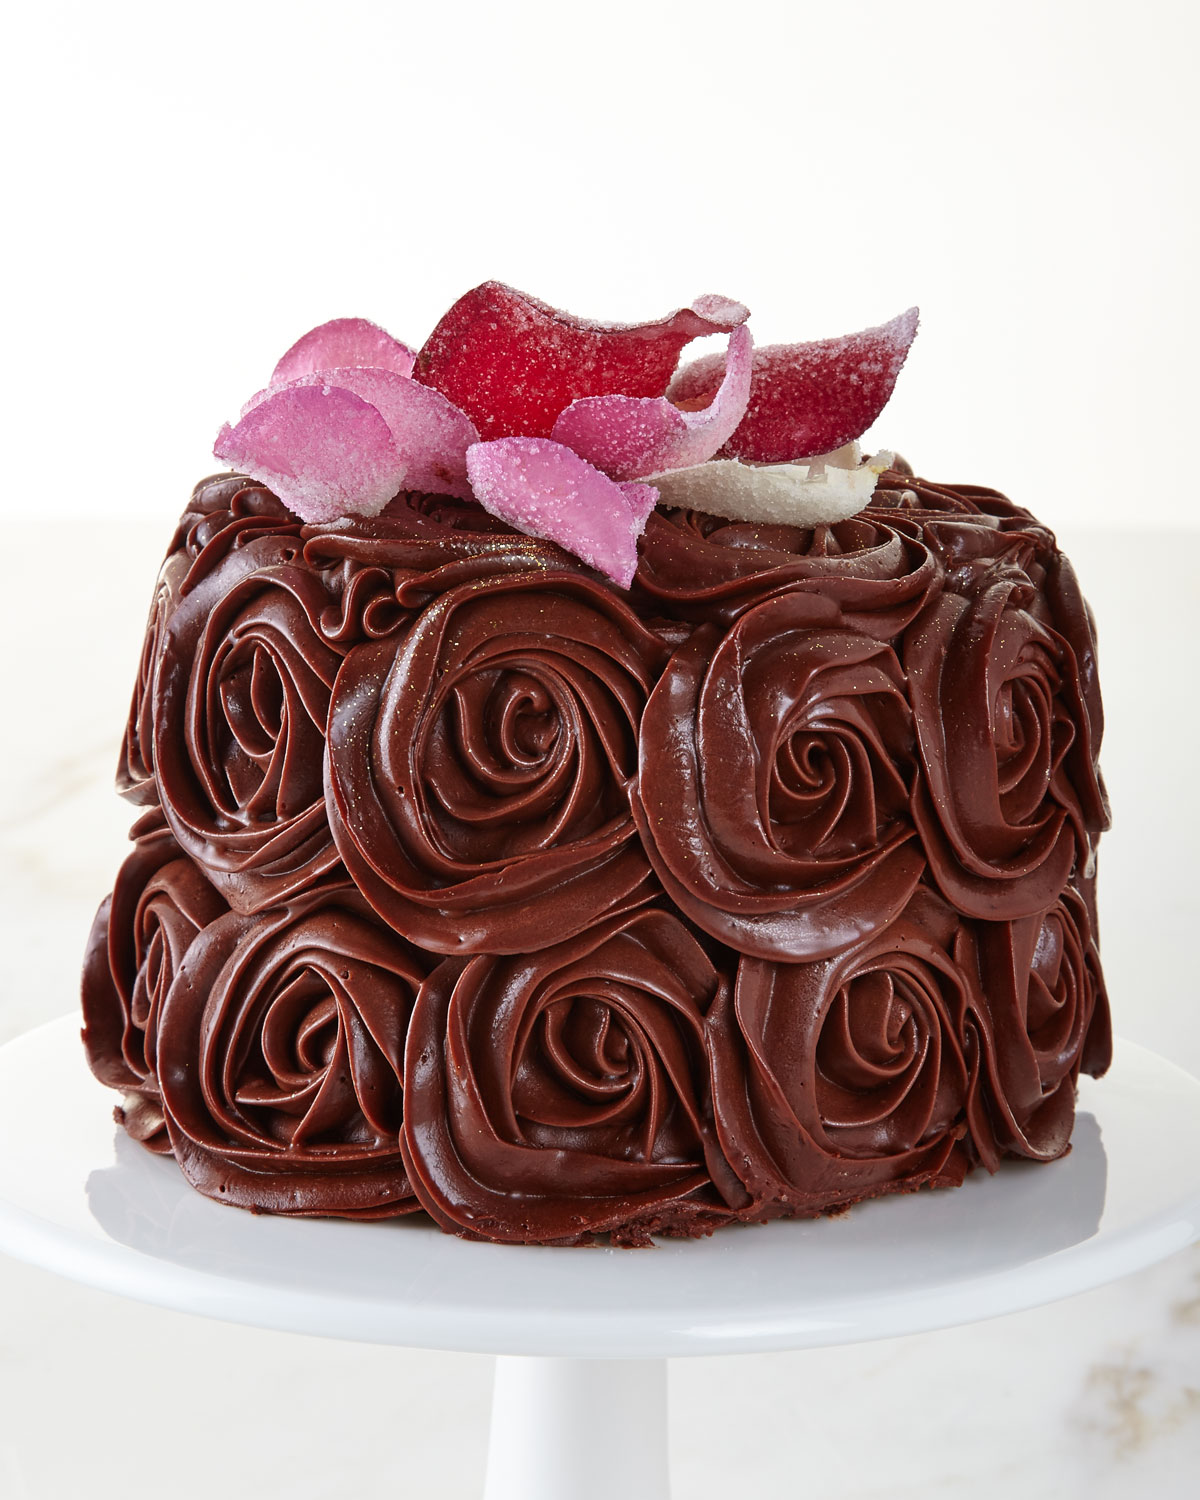 Chocolate Rose Cake For 8 10 People Neiman Marcus